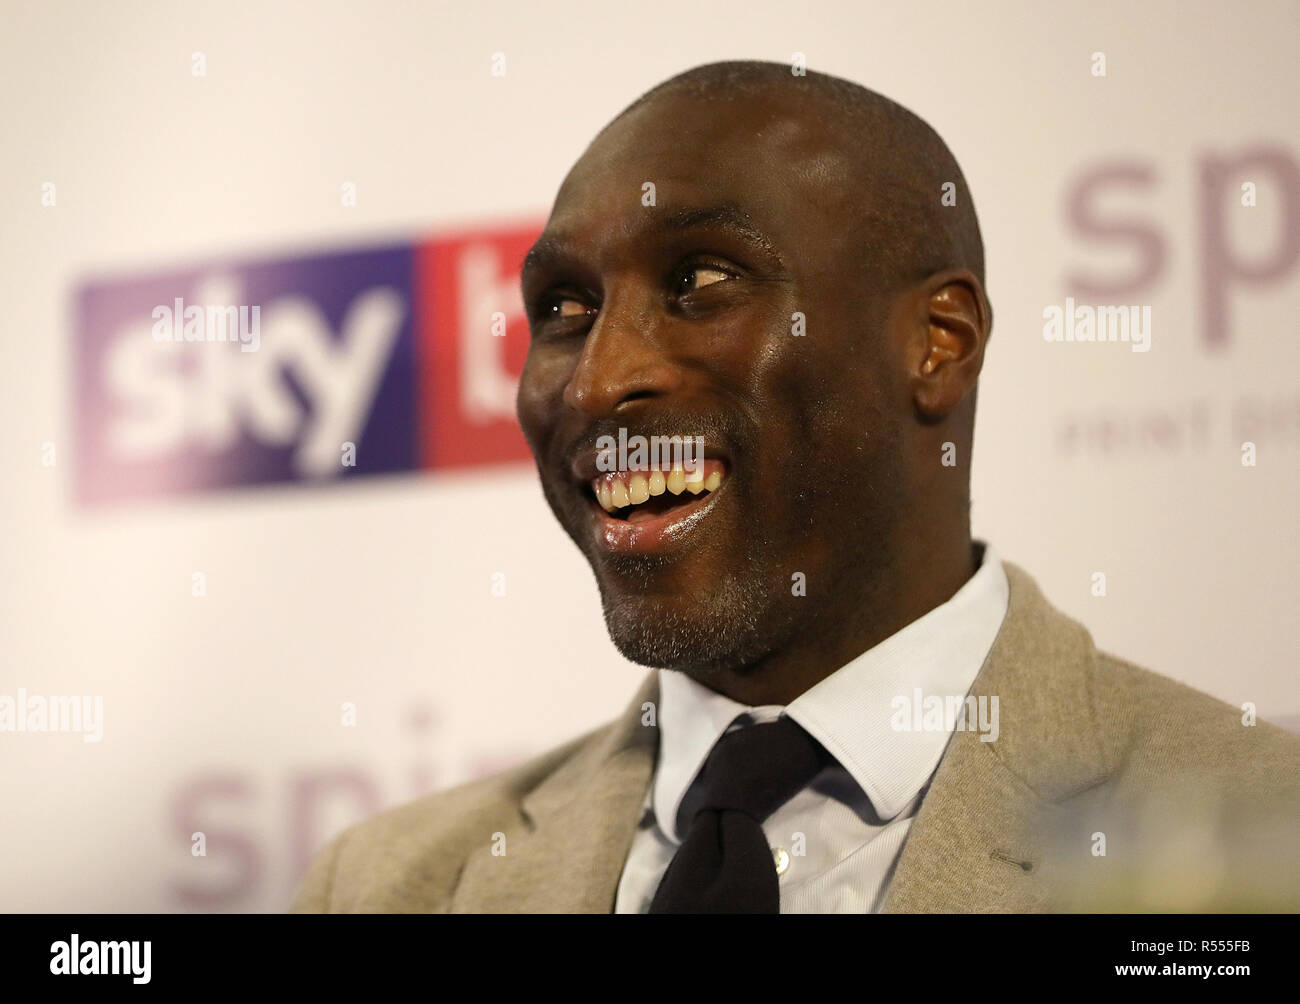 Macclesfield Town's new manager Sol Campbell during the press conference at Moss Rose, Macclesfield.